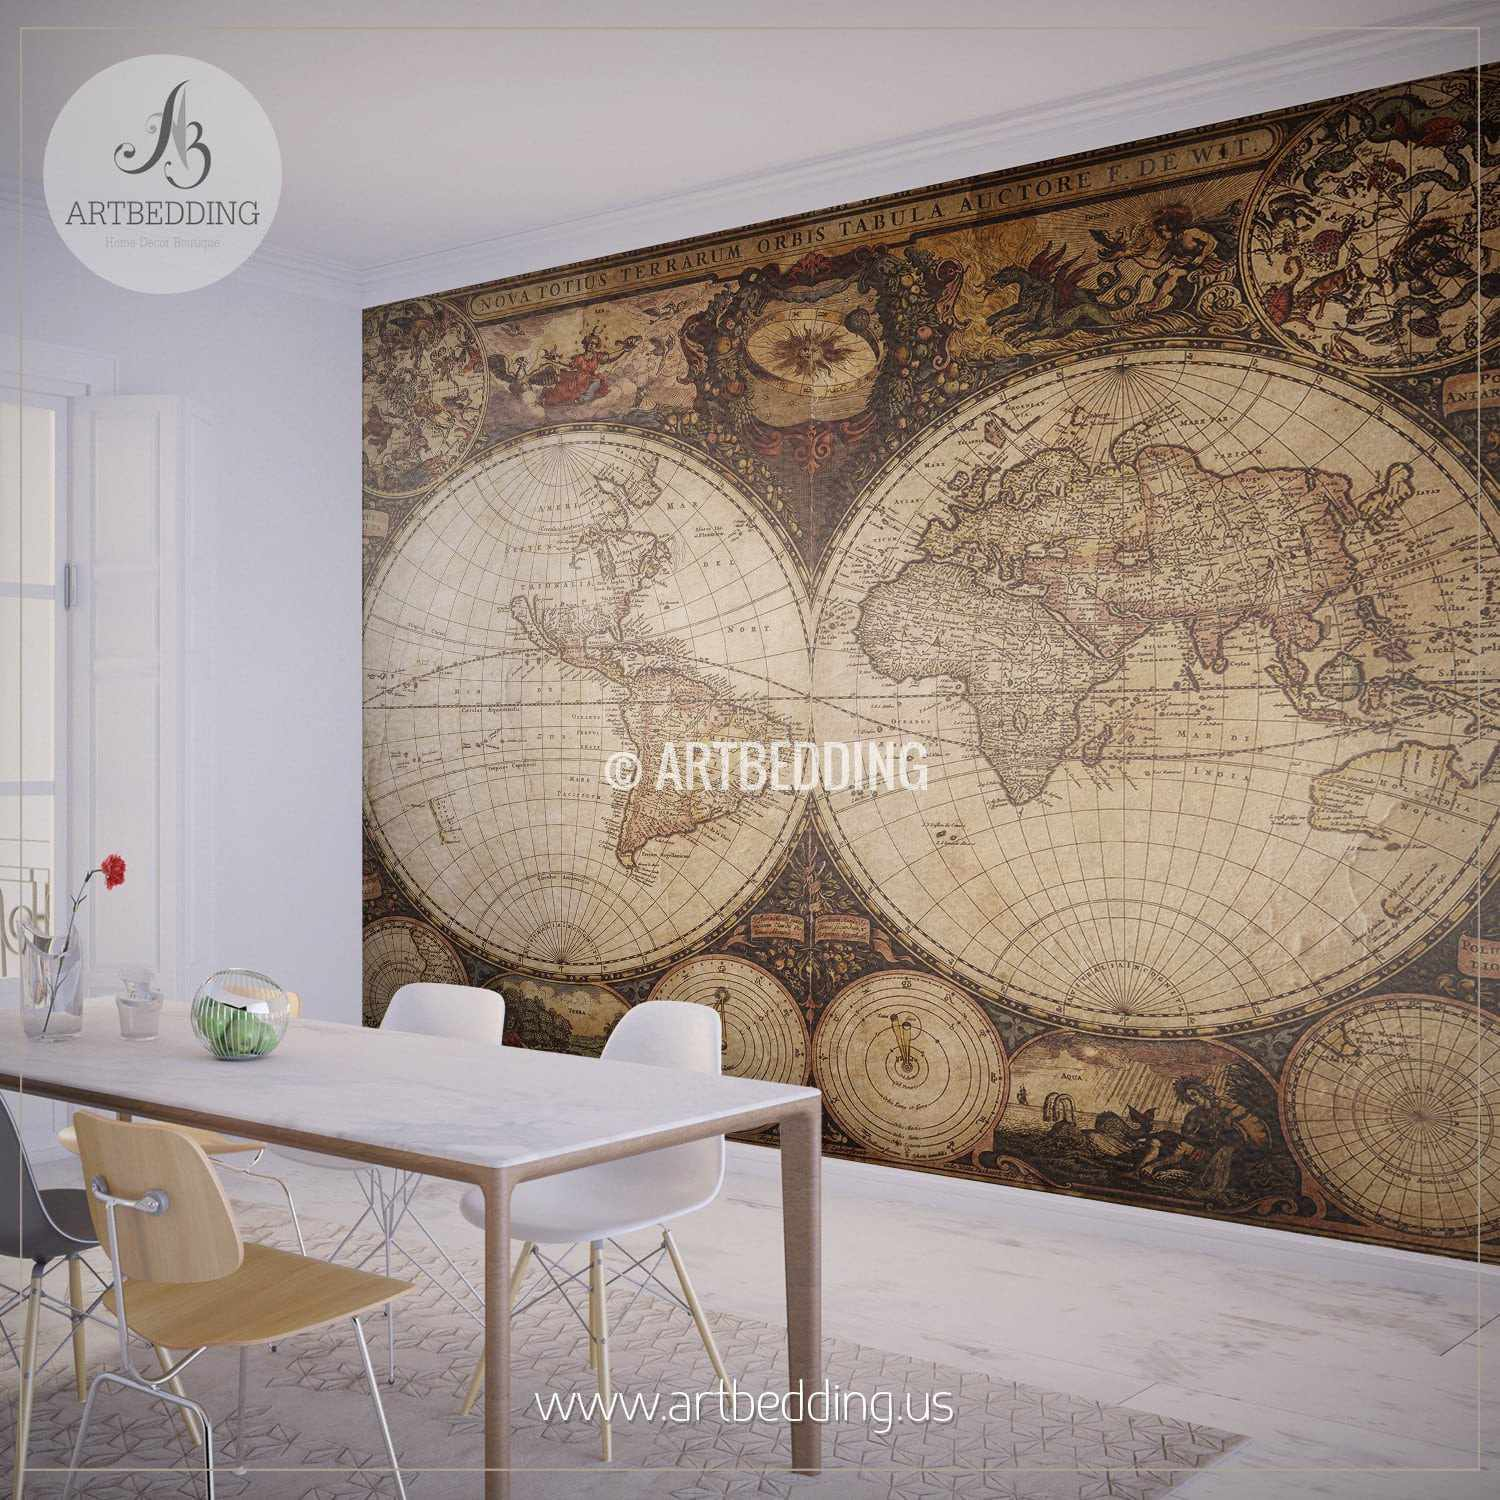 Vintage map wall mural self adhesive photo mural artbedding for Antique world map wall mural